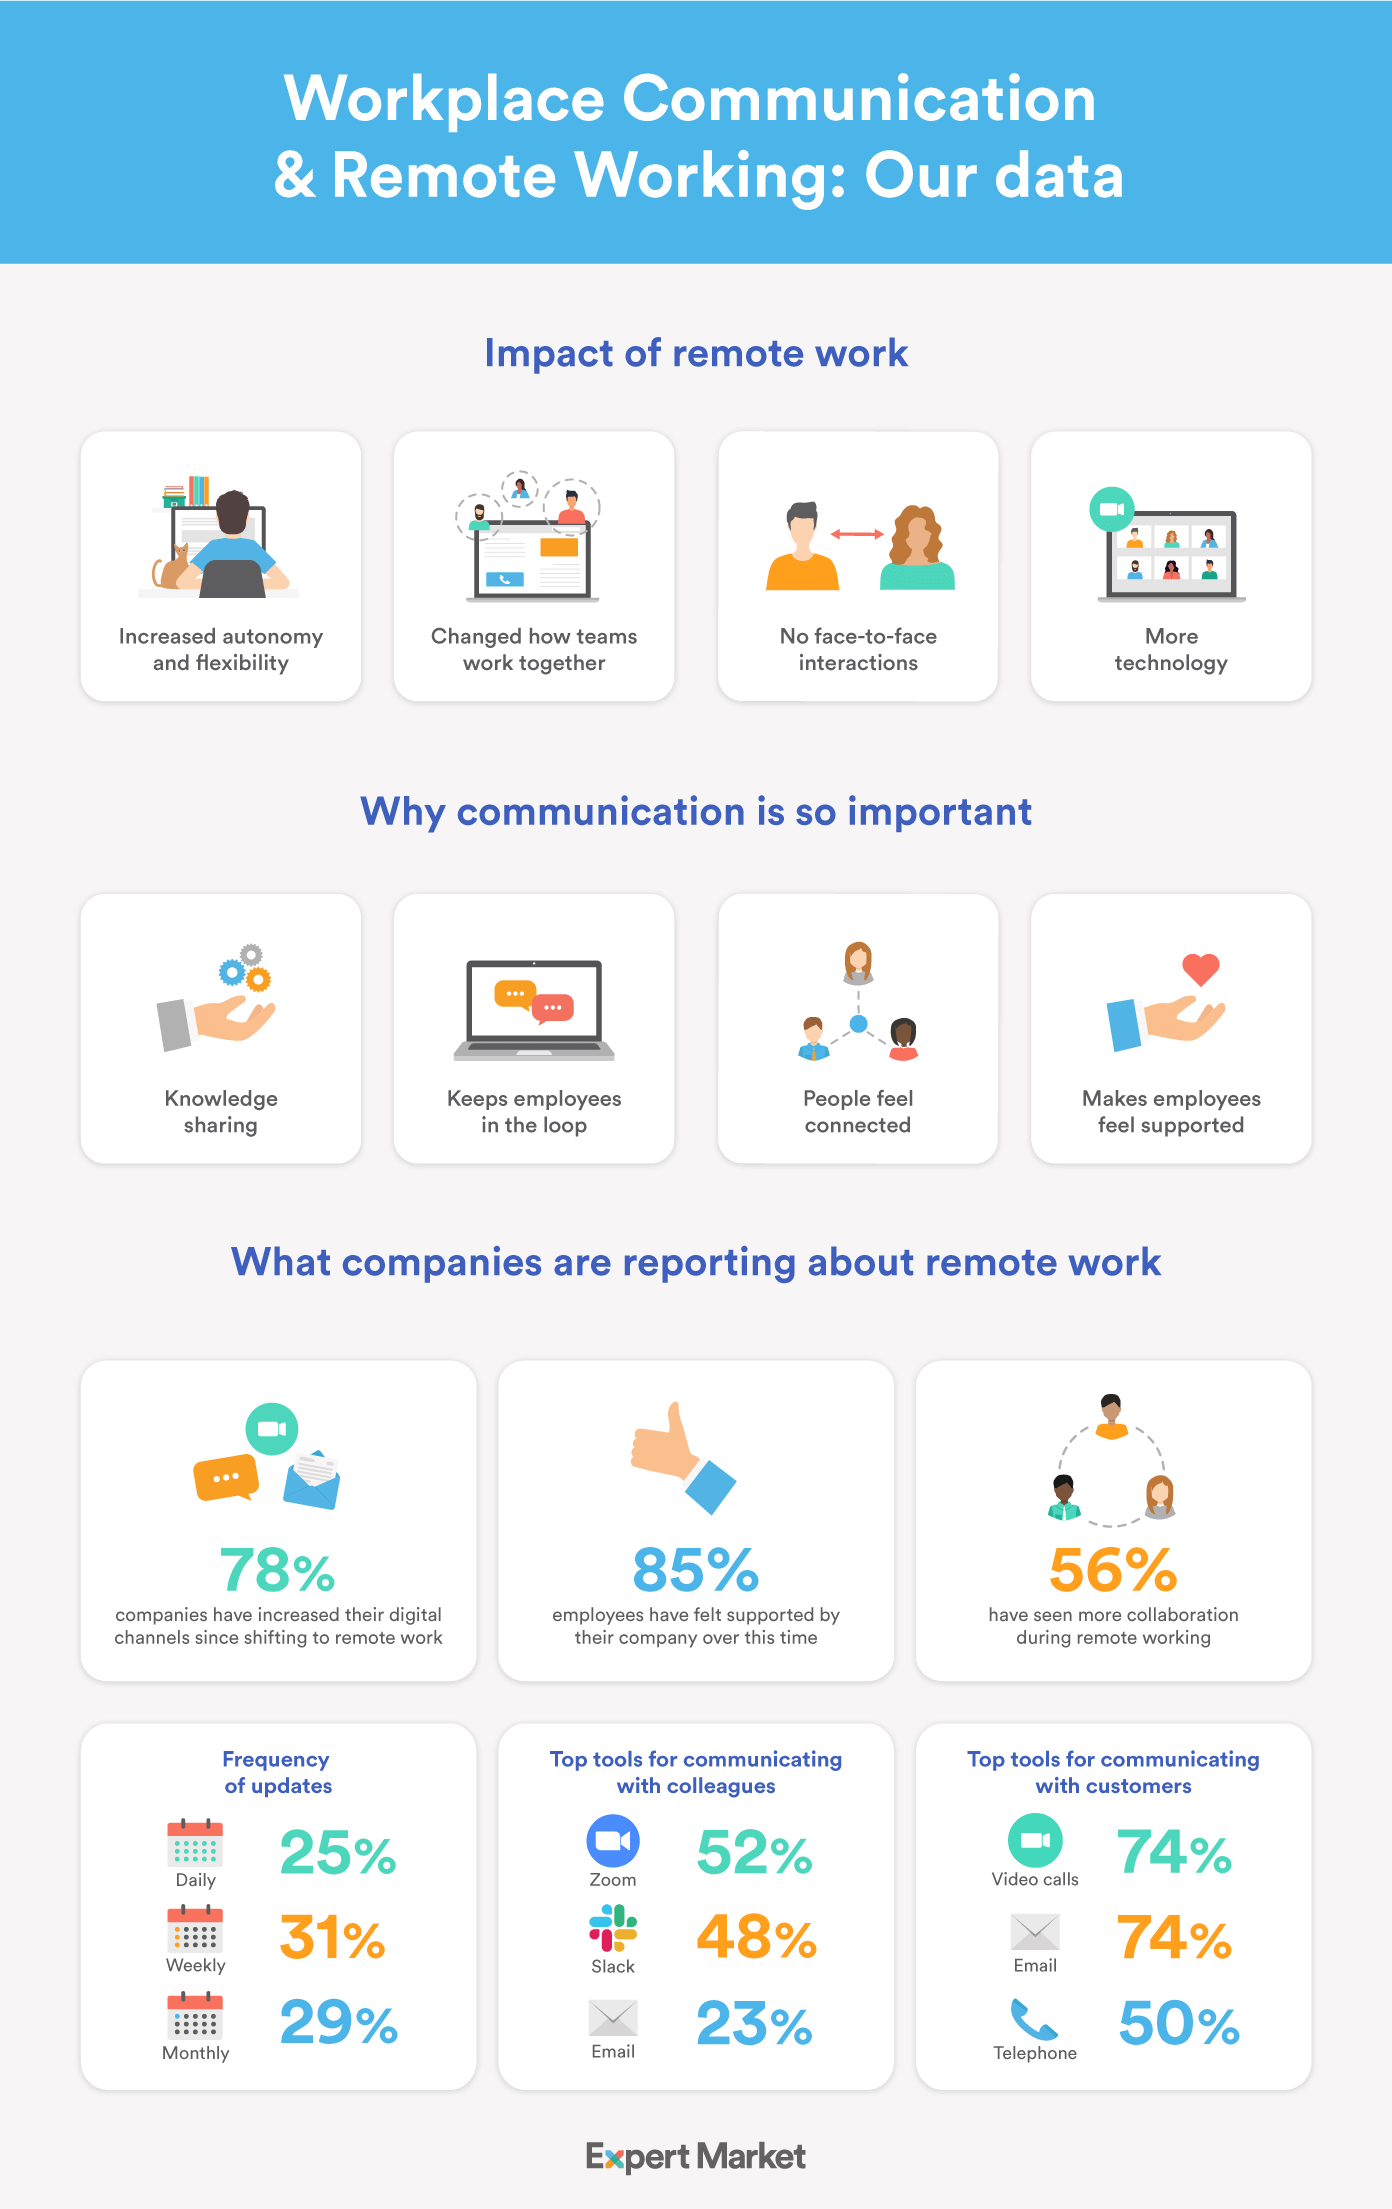 Infographic showing the data we have collected on remote working